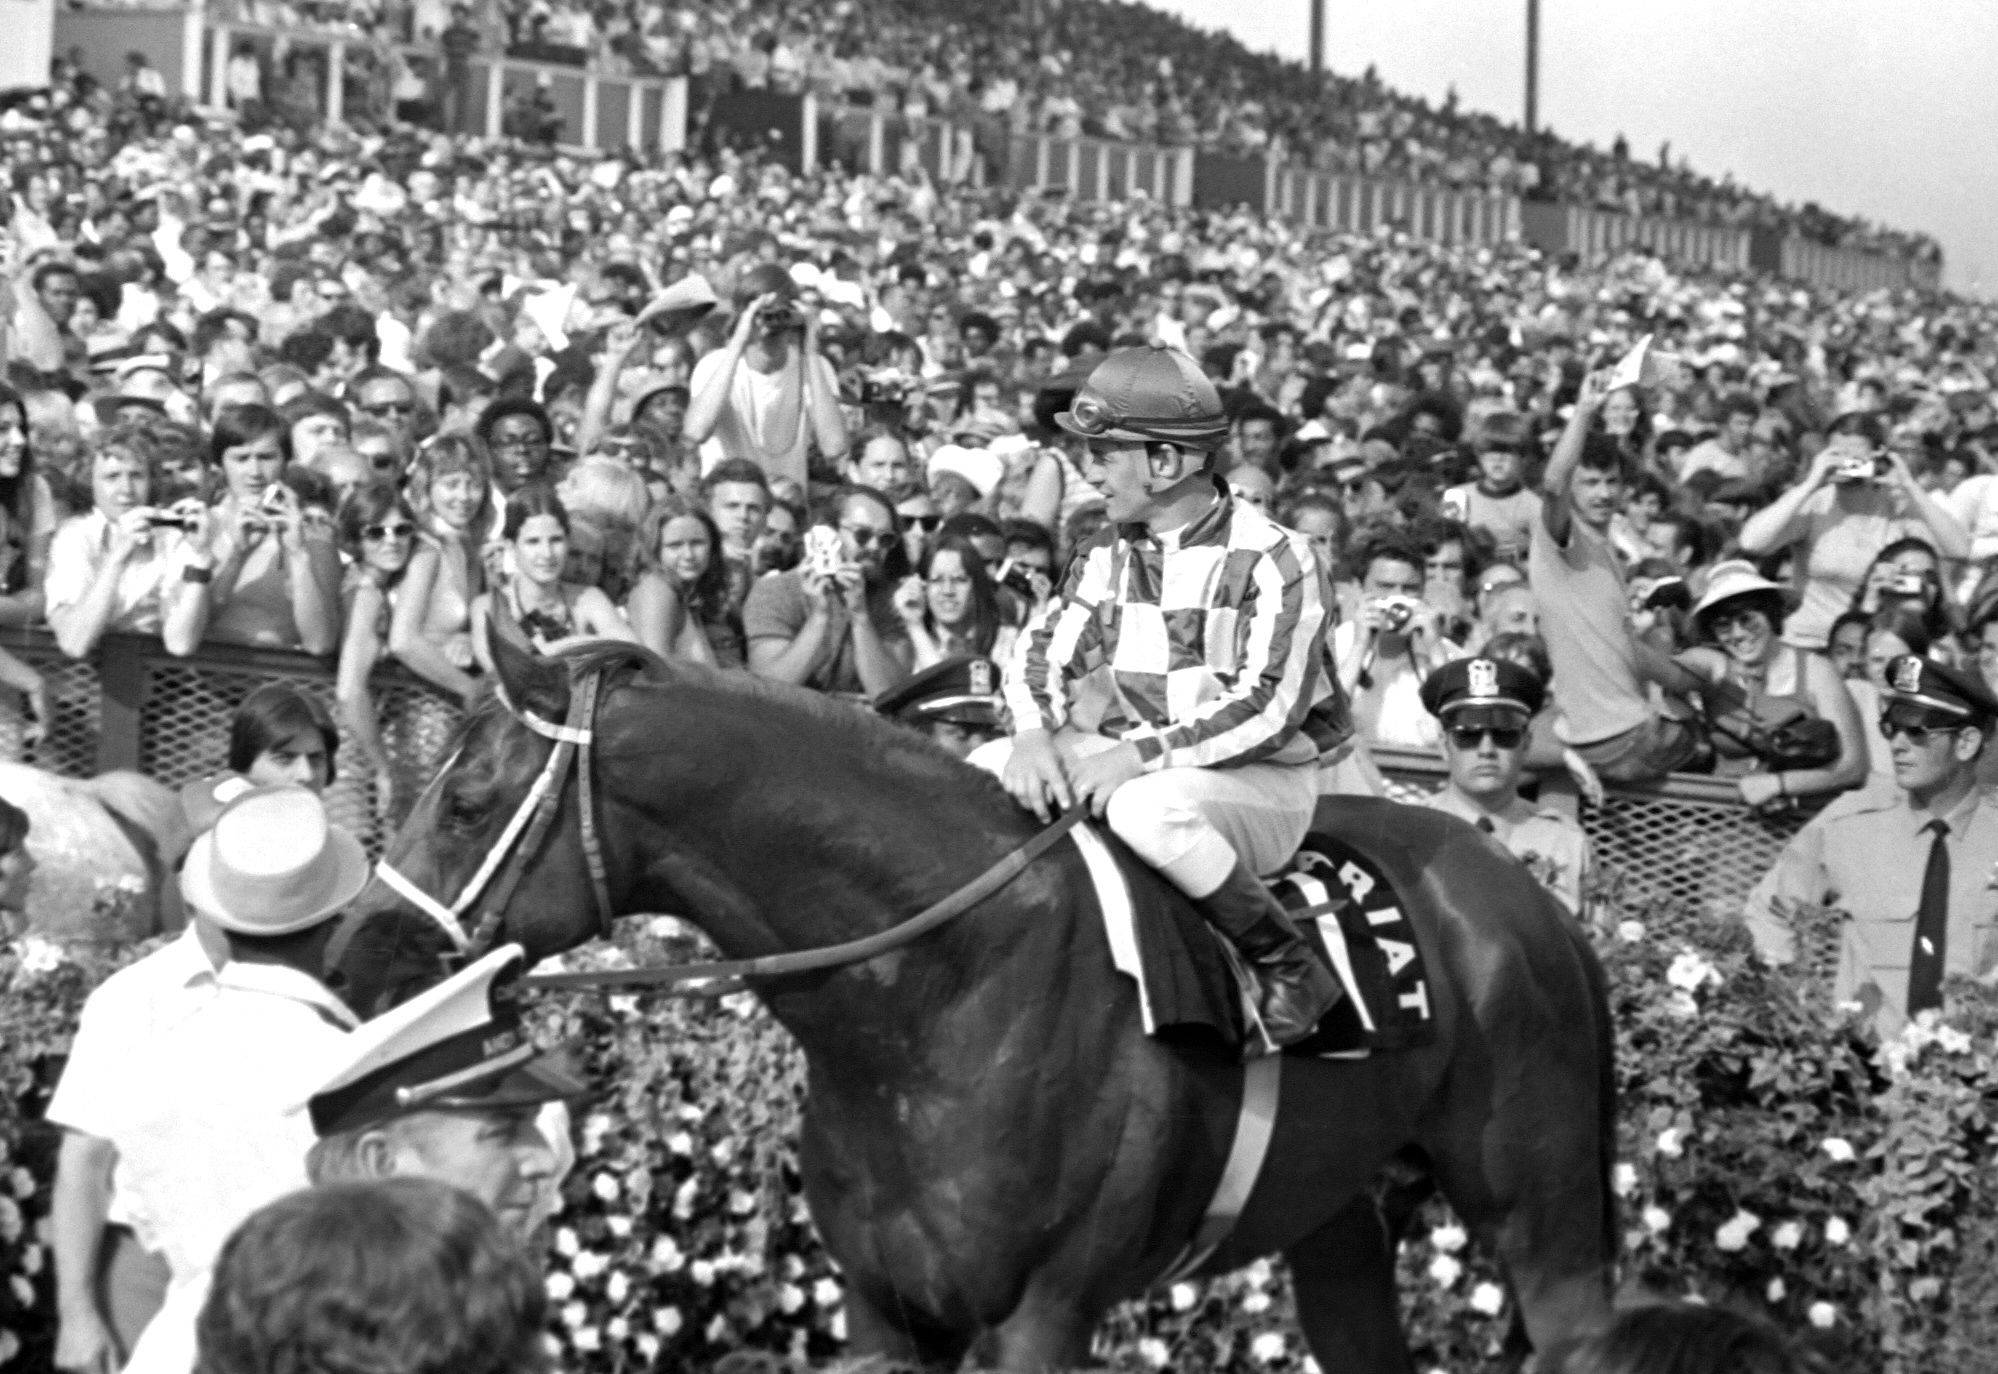 More than 41,000 fans were on hand at Arlington Park to great the legendary racehorse Secretariat. The Triple Crown winner raced in the Arlington Invitational on June 30, 1973.